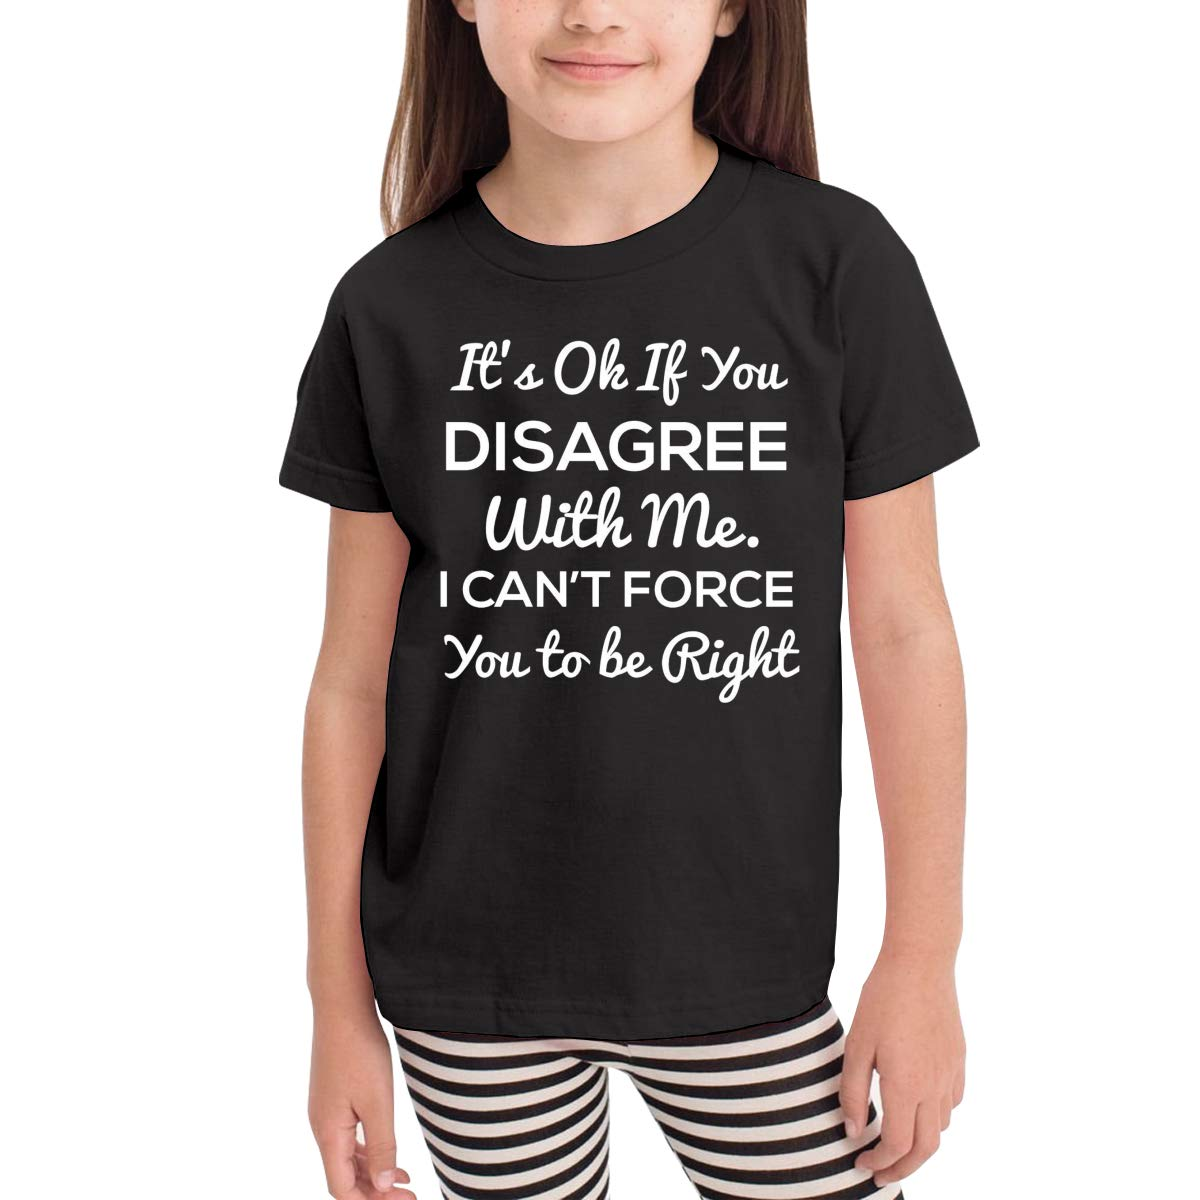 Disagree with Me I Cant Force Novelty Cotton T Shirt Personality Black Tee for Toddler Kids Boys Girls